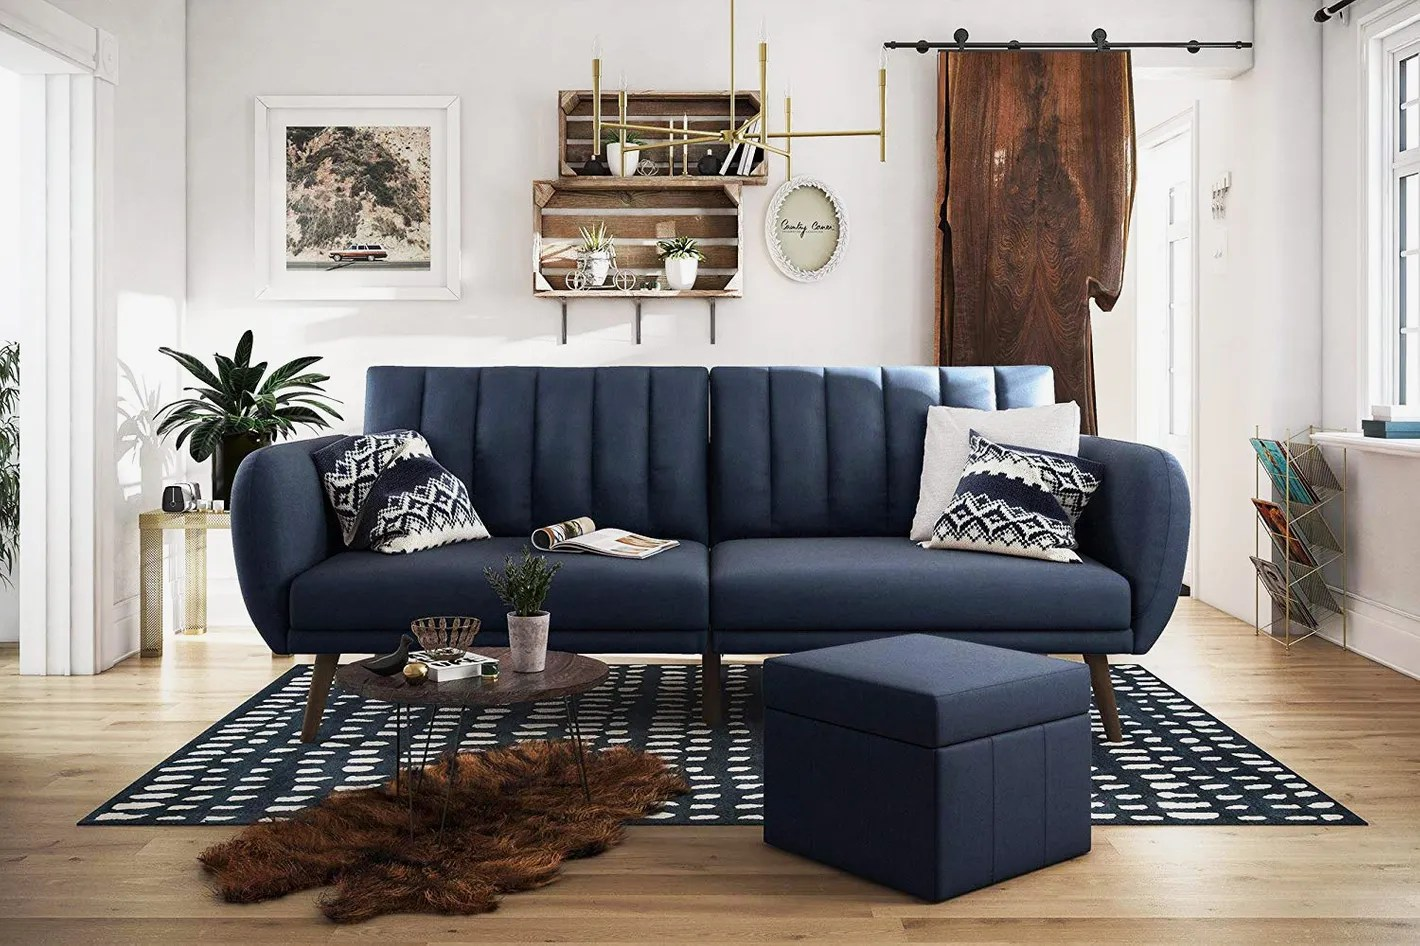 Best Places To Buy A Futon Novogratz Brittany Sofa Futon